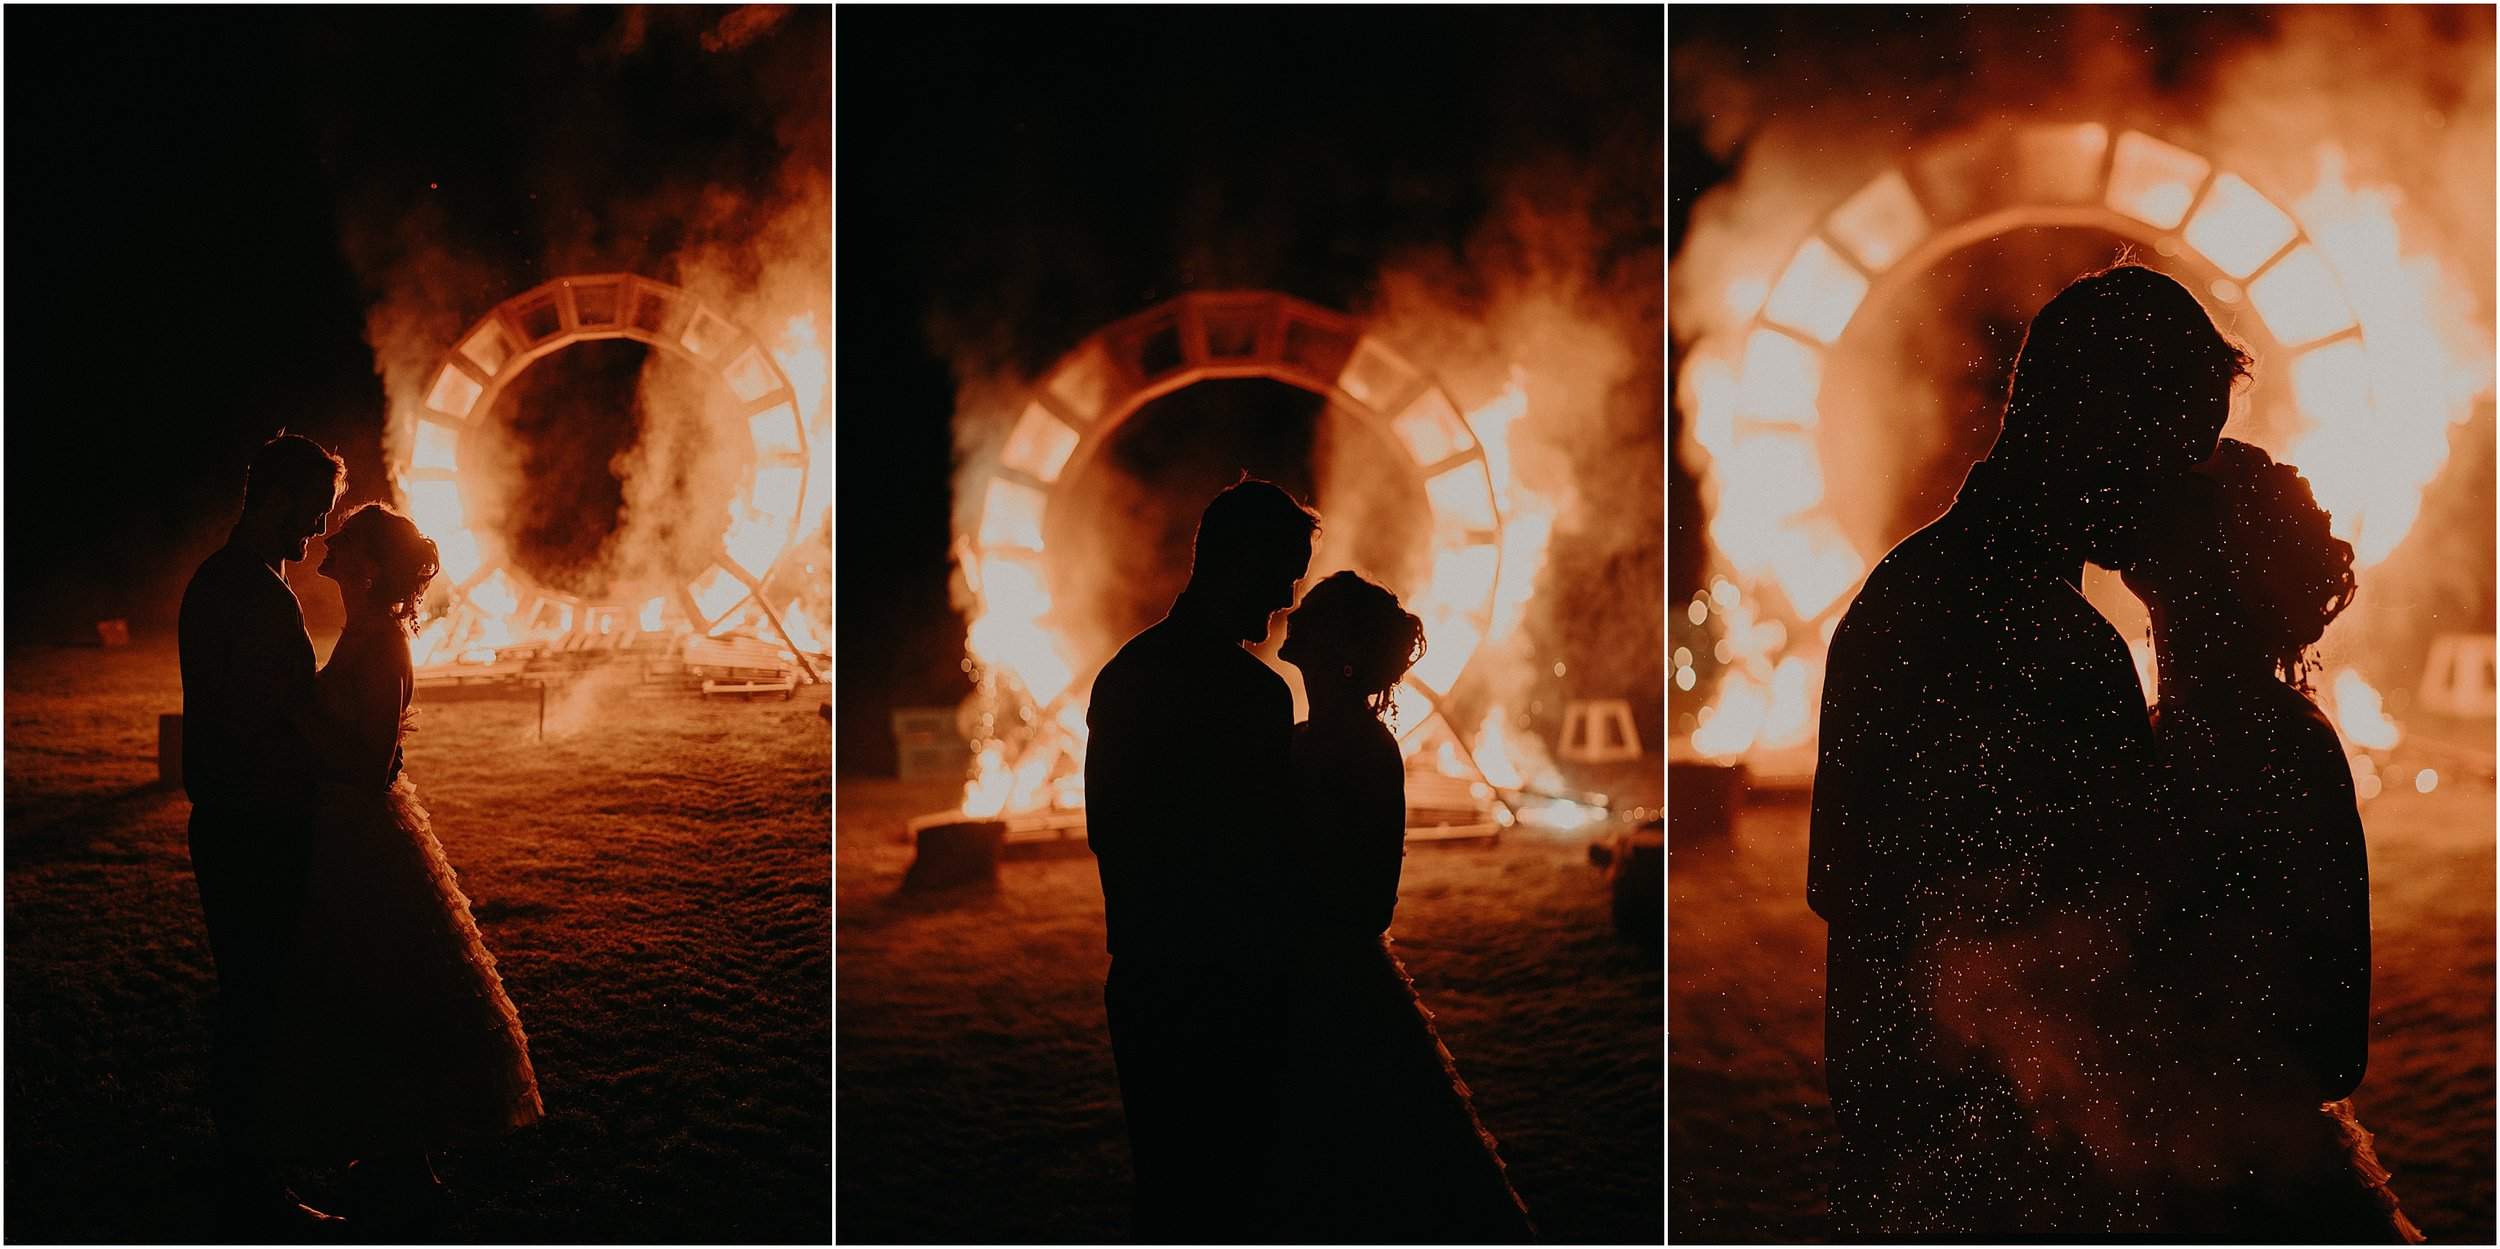 Fire-lit silhouette images of the bride and groom in front of their fire installation art piece at the adventurous mountain wedding in Tennessee